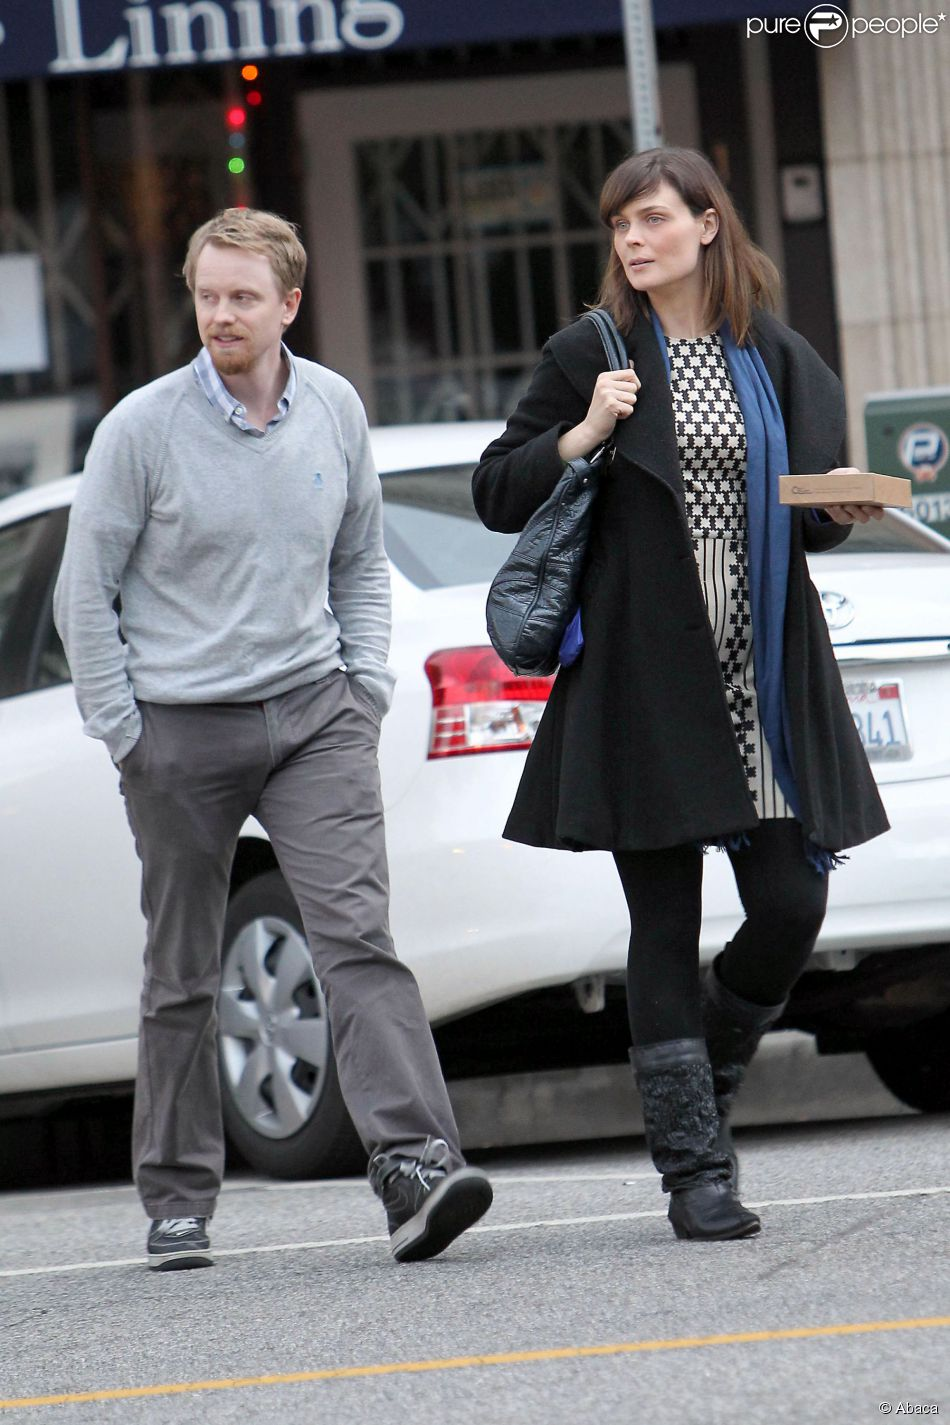 Emily deschanel husband